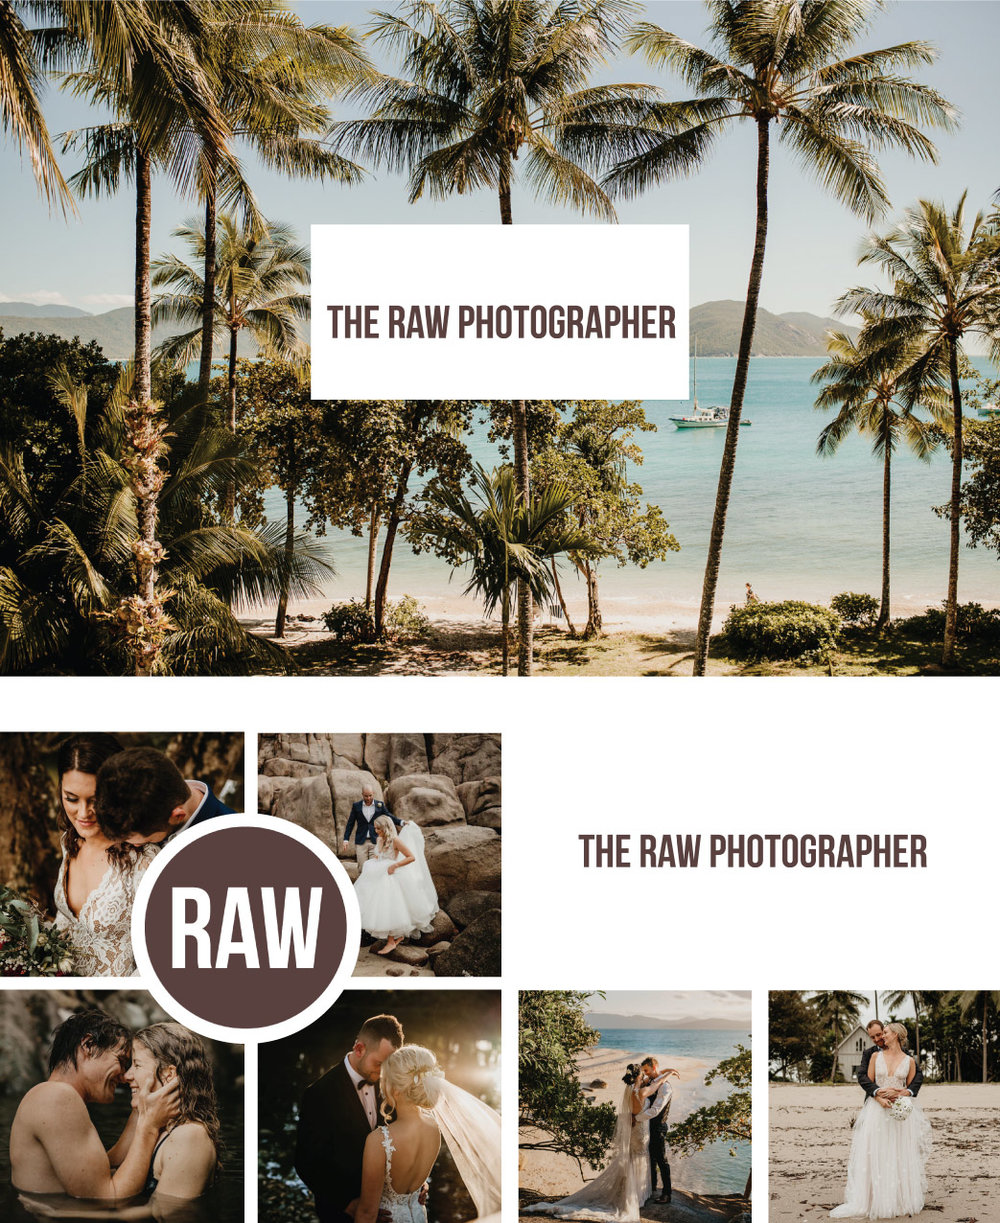 Imo-Creative---Branding-and-Website-Design---The-Raw-Photographer---Wedding-Cairns.jpg